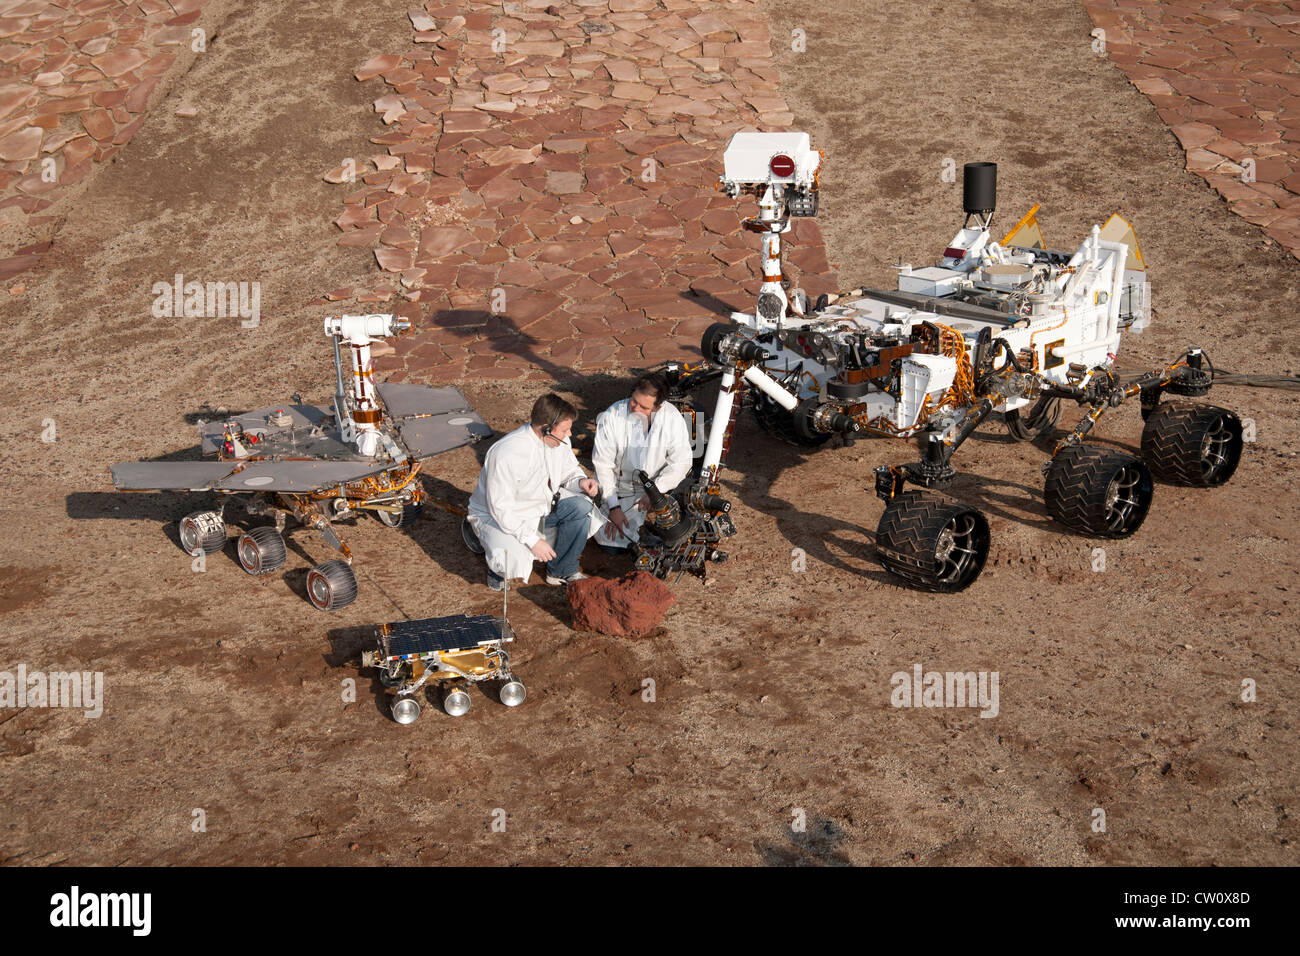 Two spacecraft engineers with Mars rovers: Sojourner, Mars Exploration Rover Project test rover and Curiosity - Stock Image